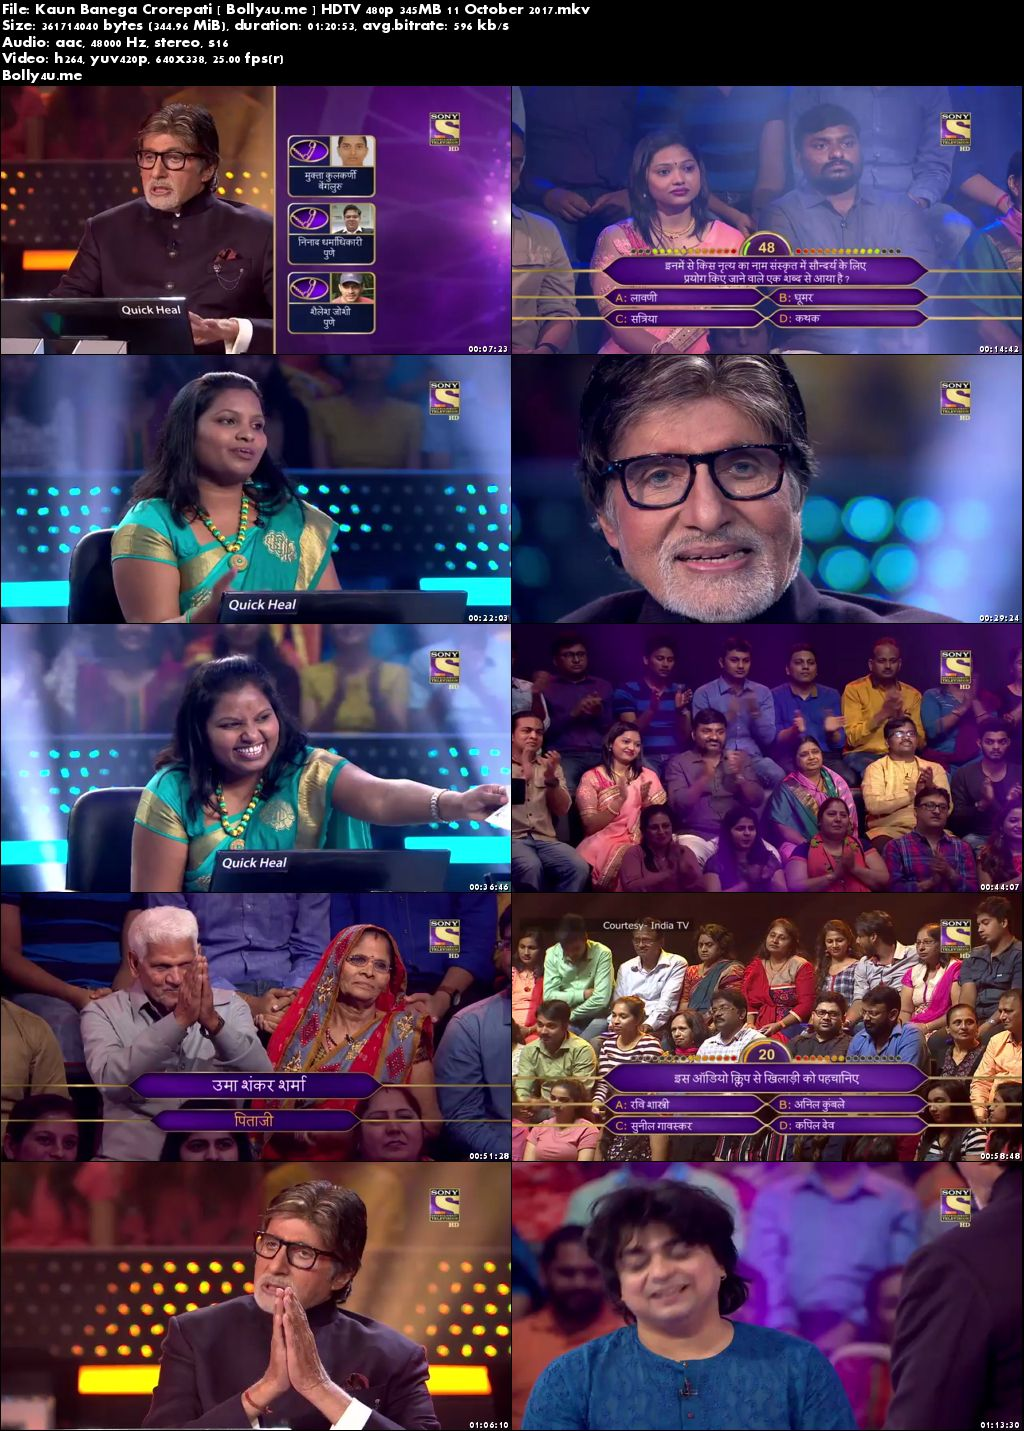 Kaun Banega Crorepati HDTV 480p 350MB 11 October 2017 Download